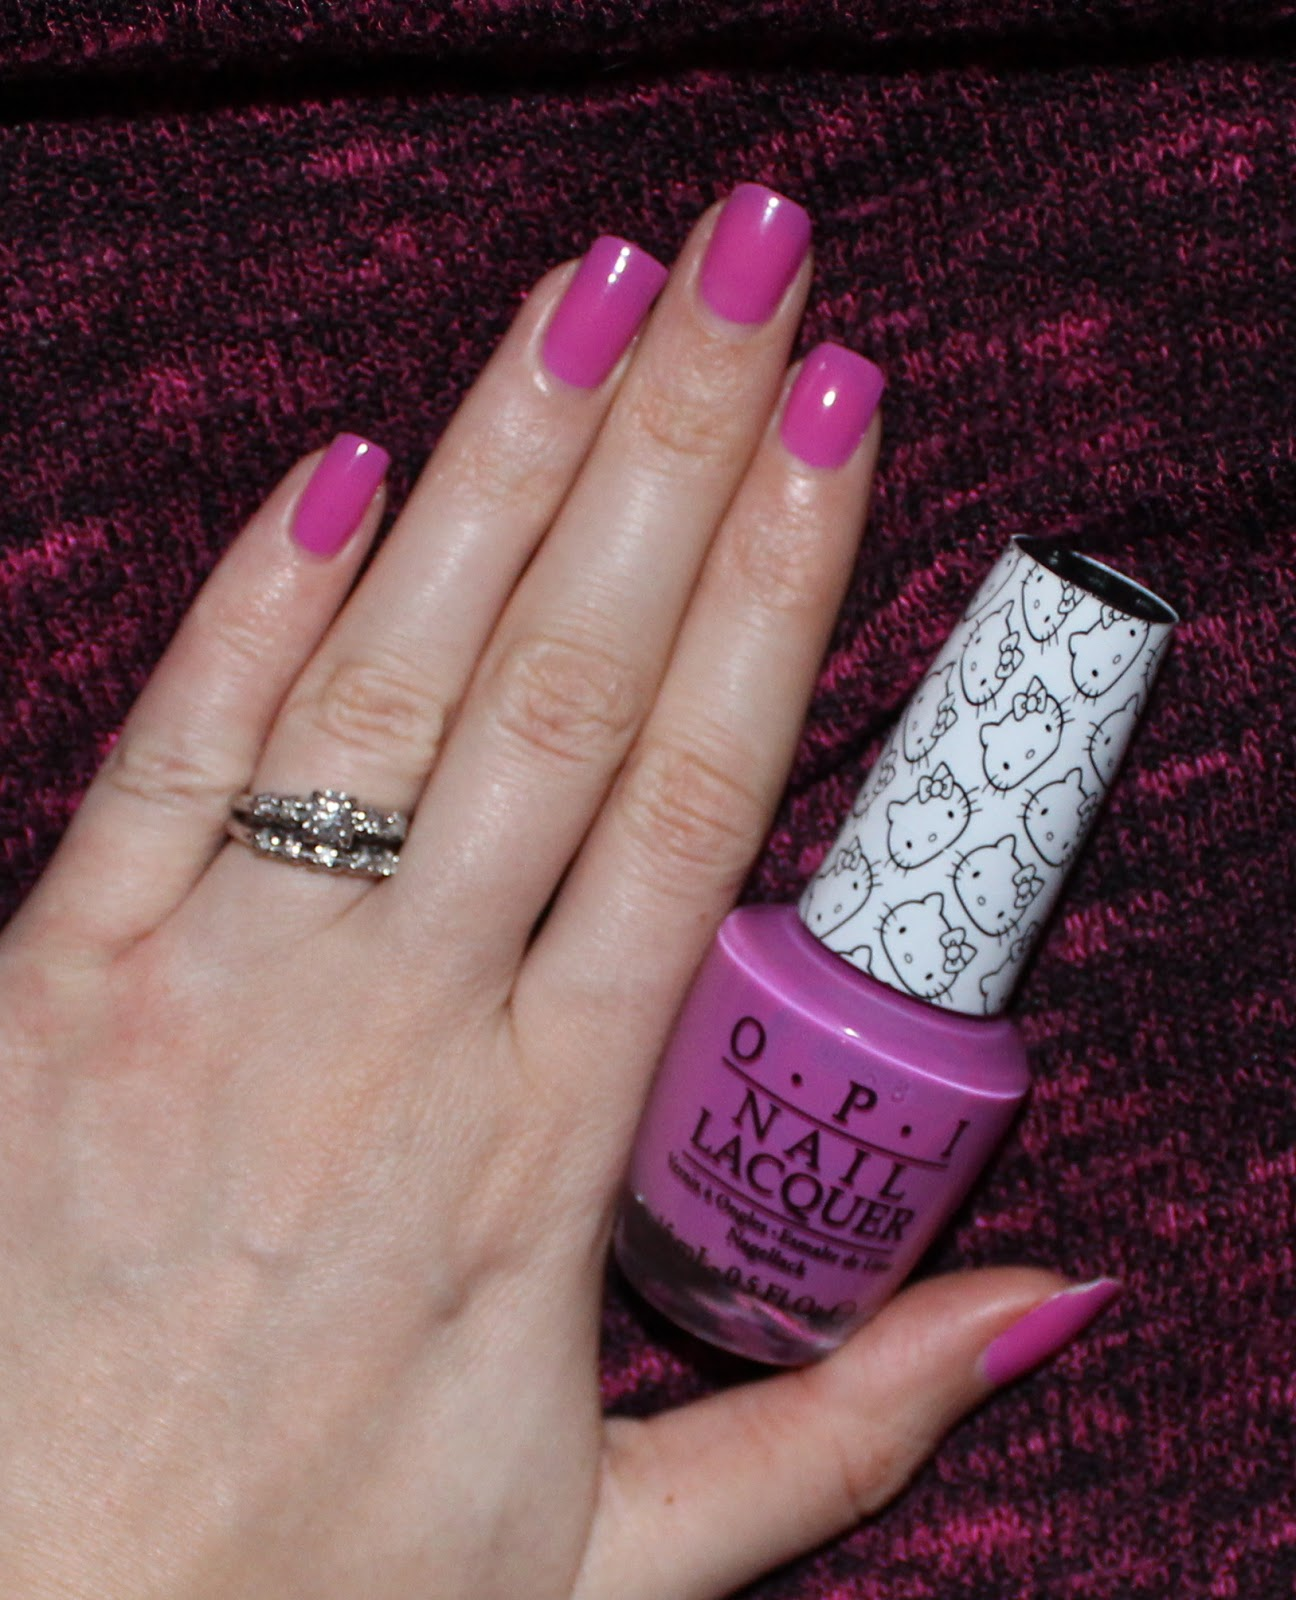 beyond blush: opi super cute in pink